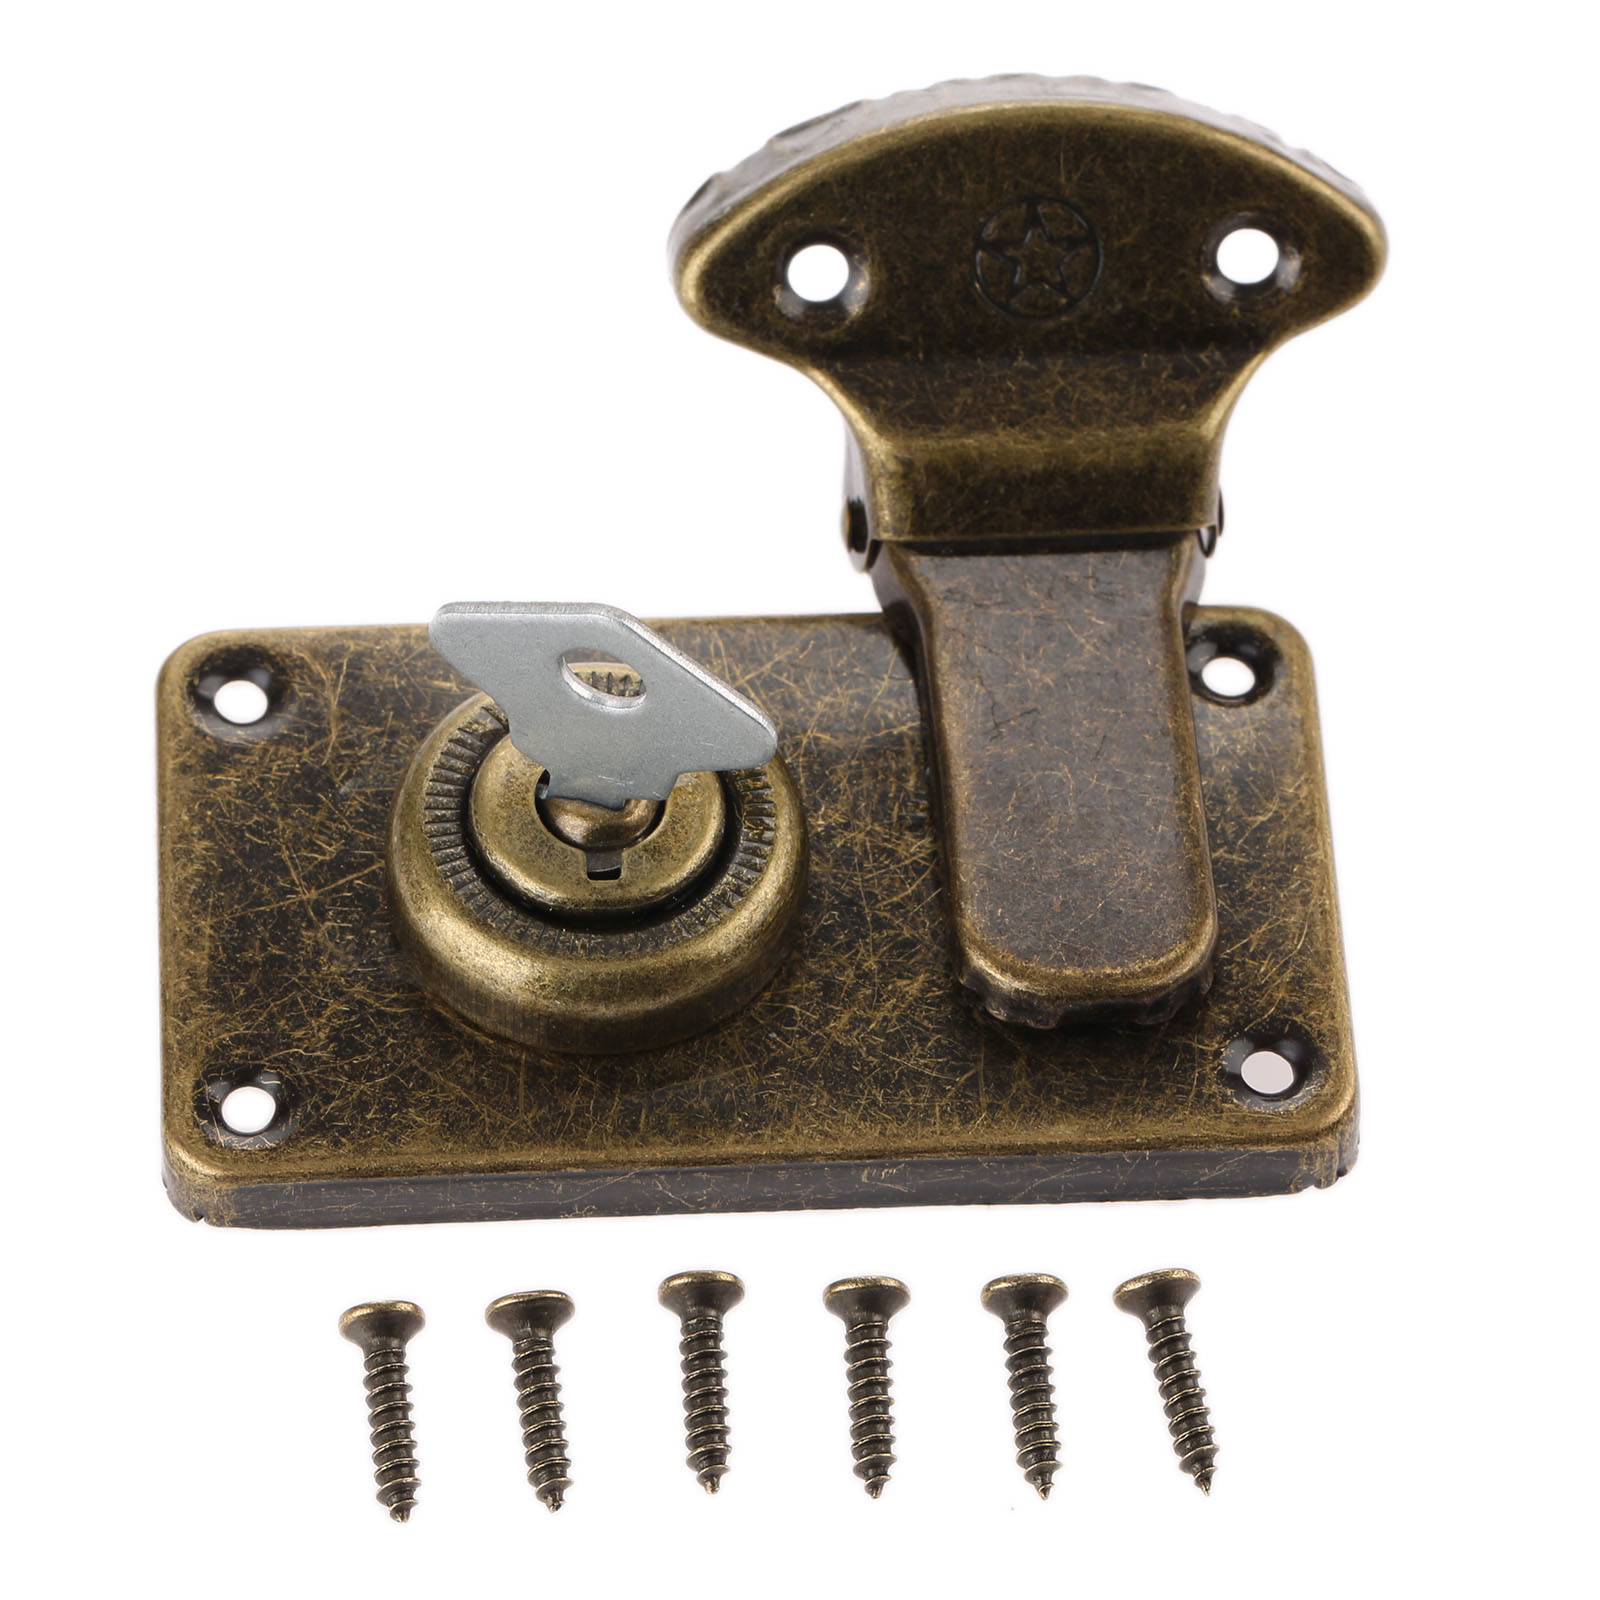 Vintage Furniture Hardware Antique Box Latches Decorative Hasp Jewelry Wooden Box Suitcase Hasp Latch Toggle With Key and Screw mobile phone